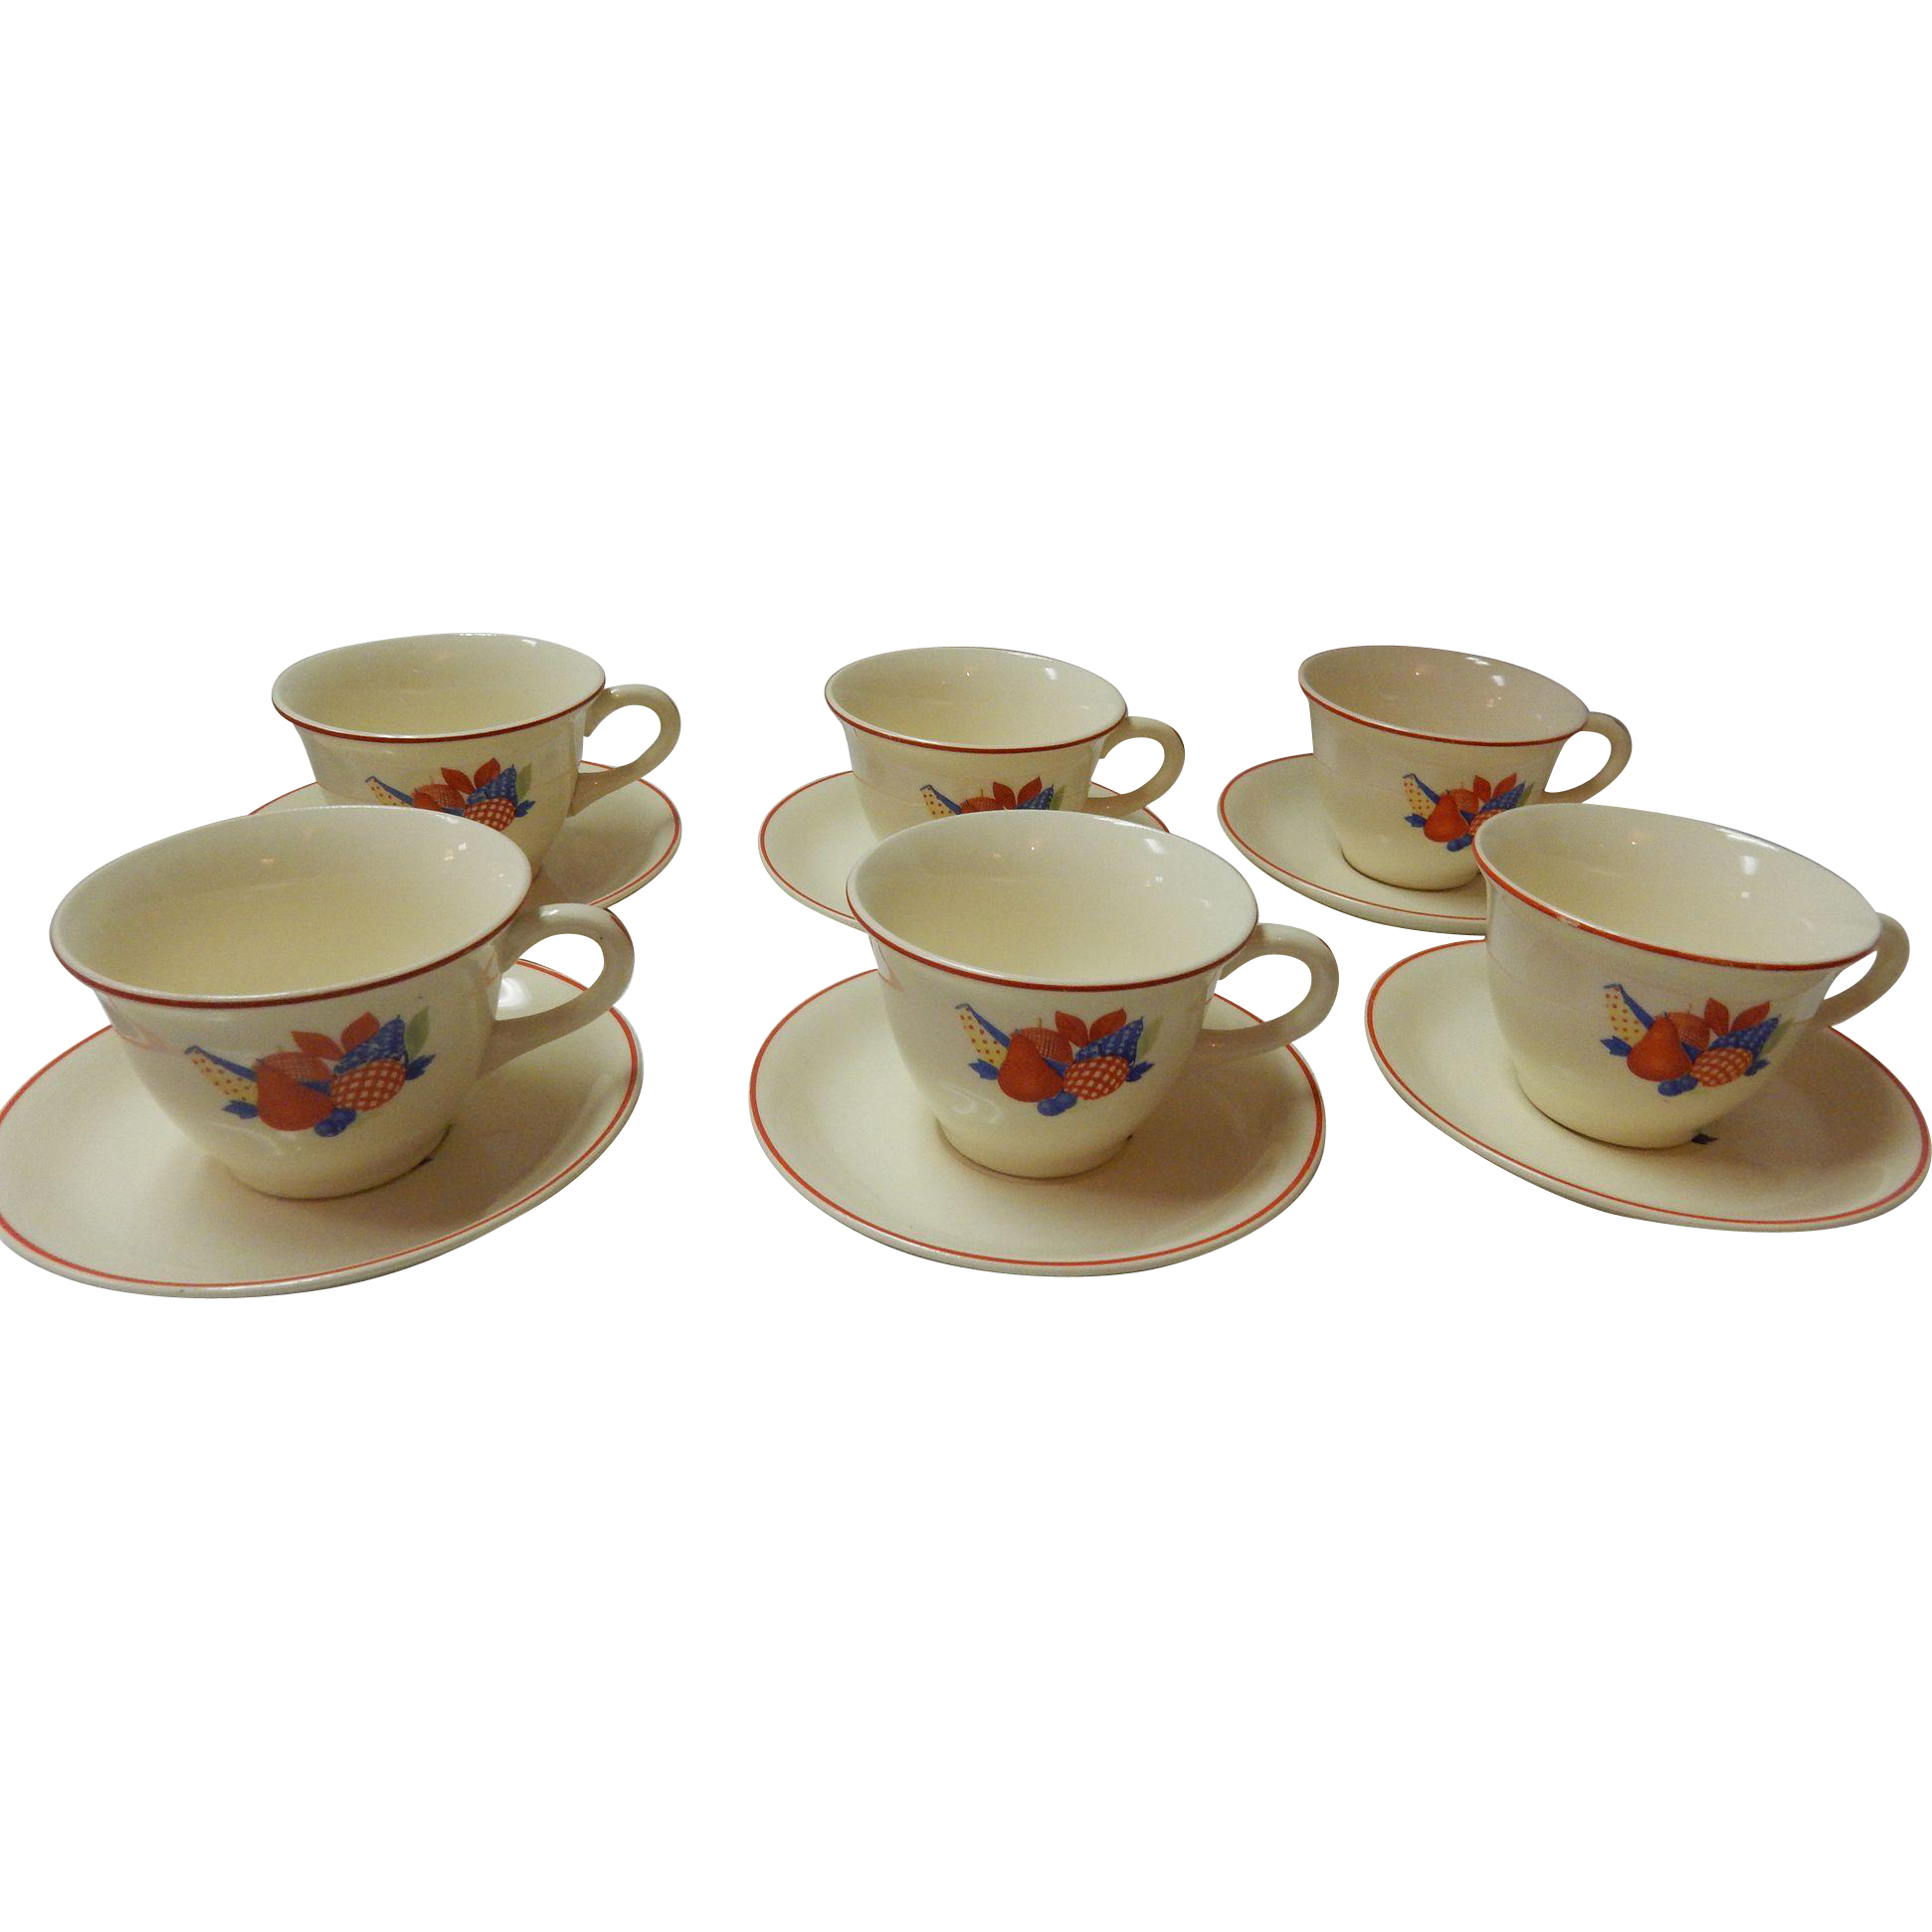 Set Of 6 Calico Fruit Cups & Saucers Universal Cambridge Pottery